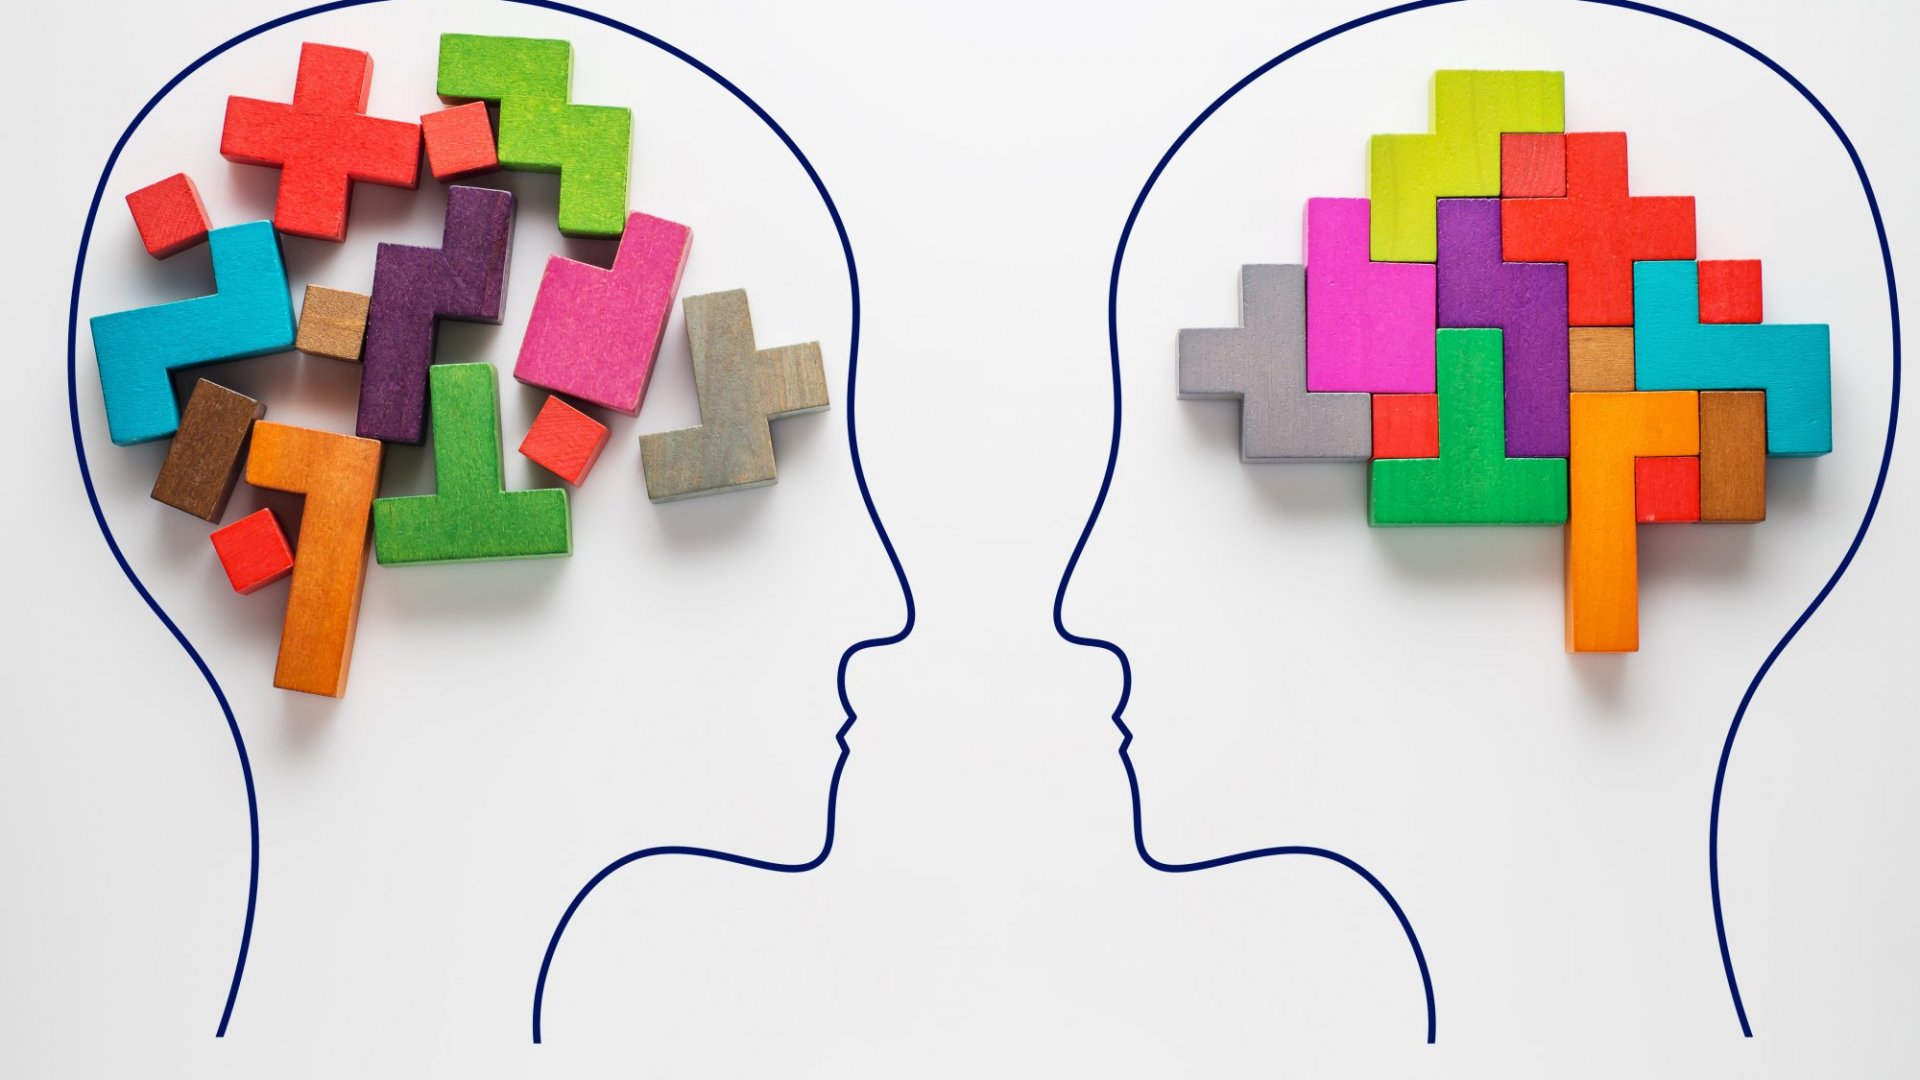 A Growth Mindset Is Powerful, but Only if You Know How to Use it | Inc.com